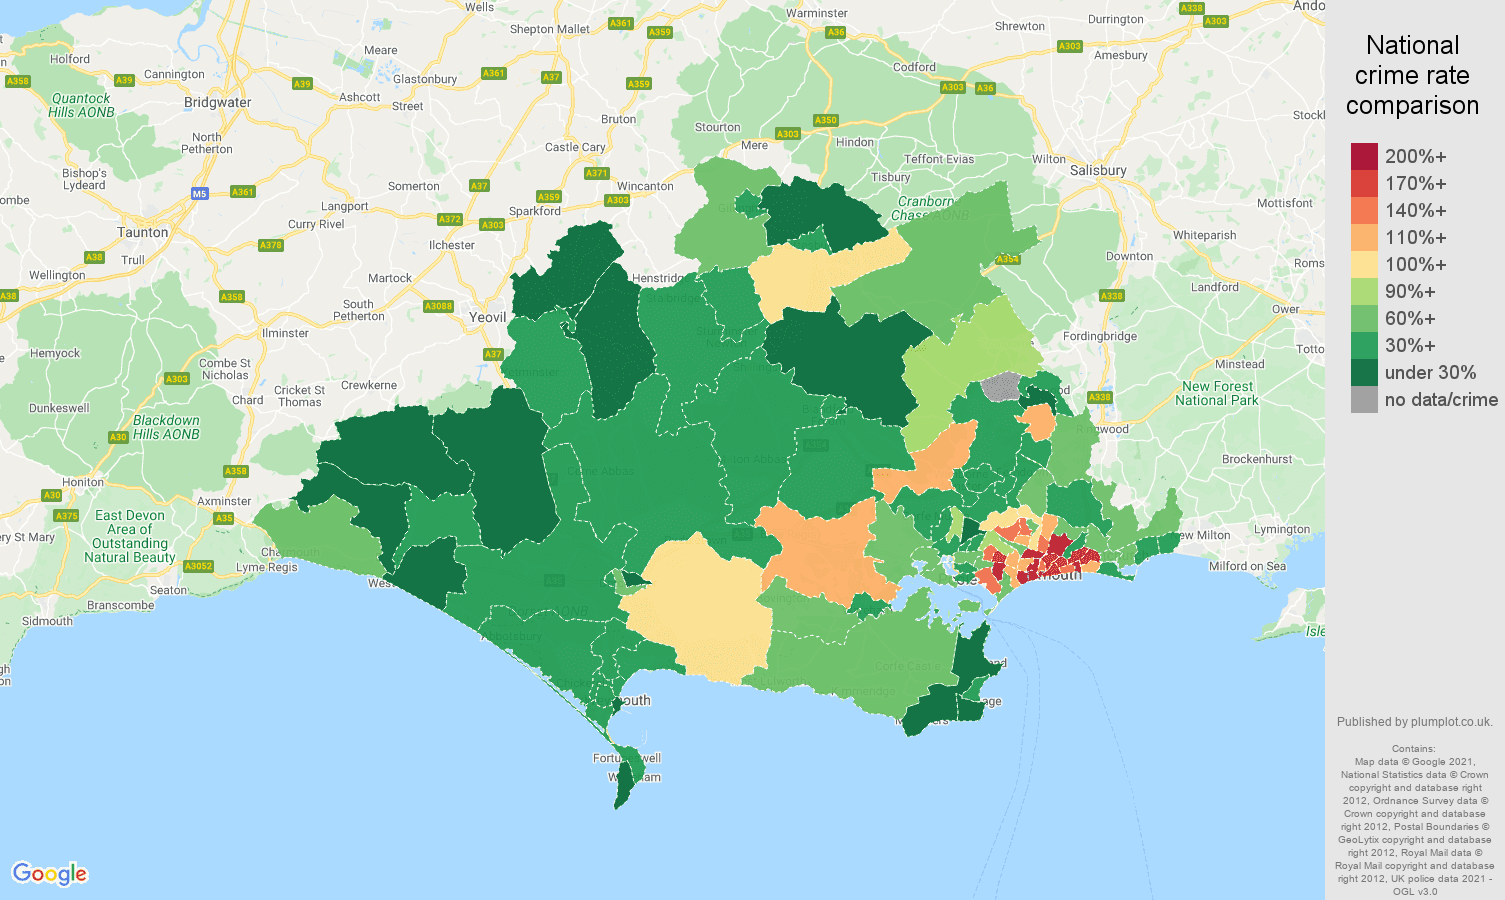 Dorset vehicle crime rate comparison map